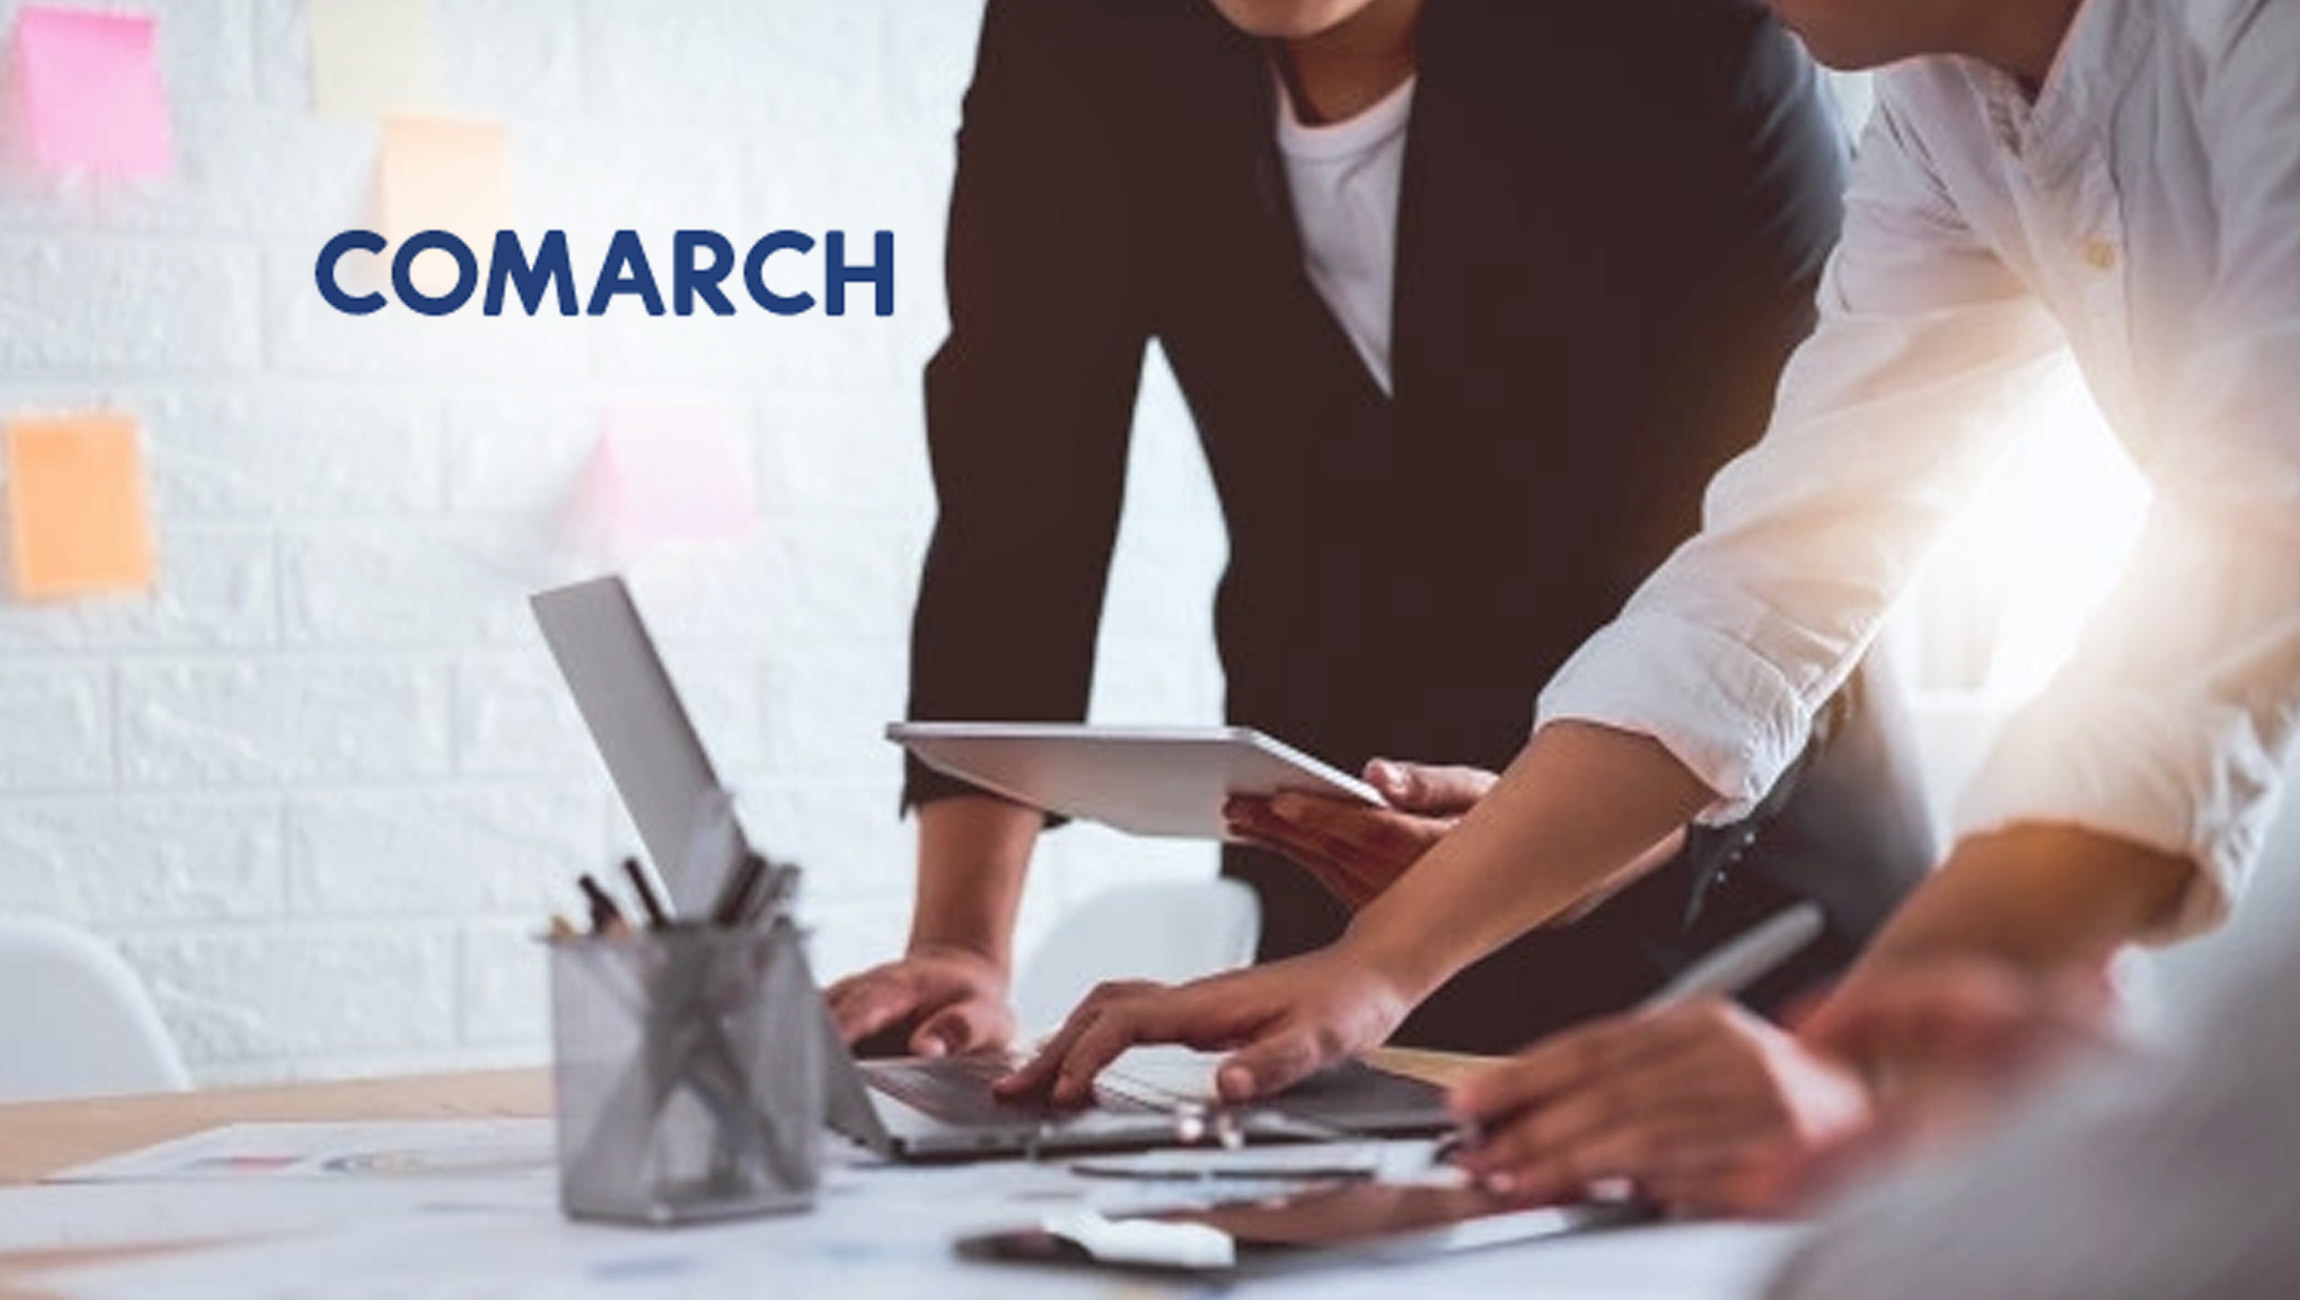 Enterprise Holdings and Comarch Discuss the Customer Experience & Loyalty 1